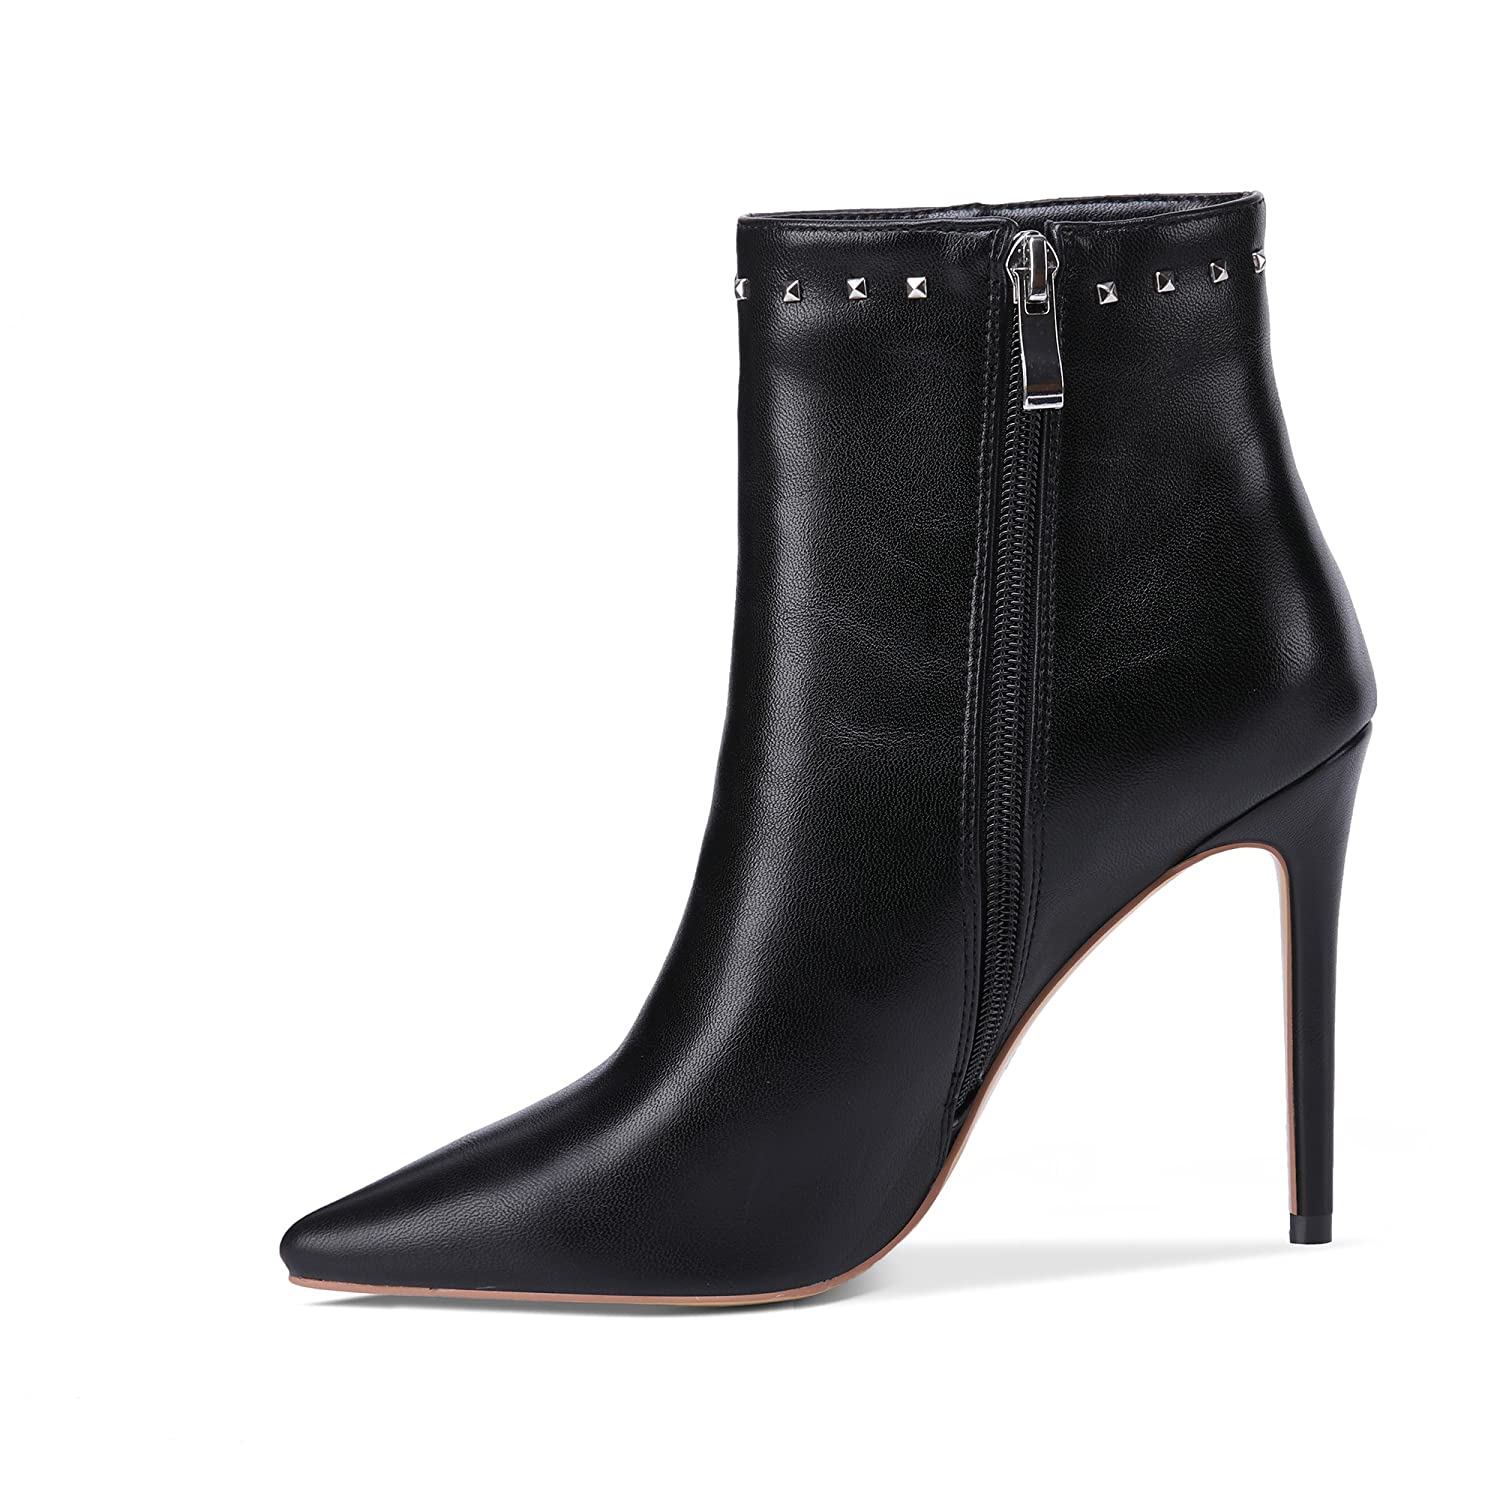 onlymaker Pointed Toe Studded Rivet Ankle Boots for High Women Side Zipper Dress High for Heels Booties Black B078YPCRFG 9 B(M) US|Y-black 5dfcbf